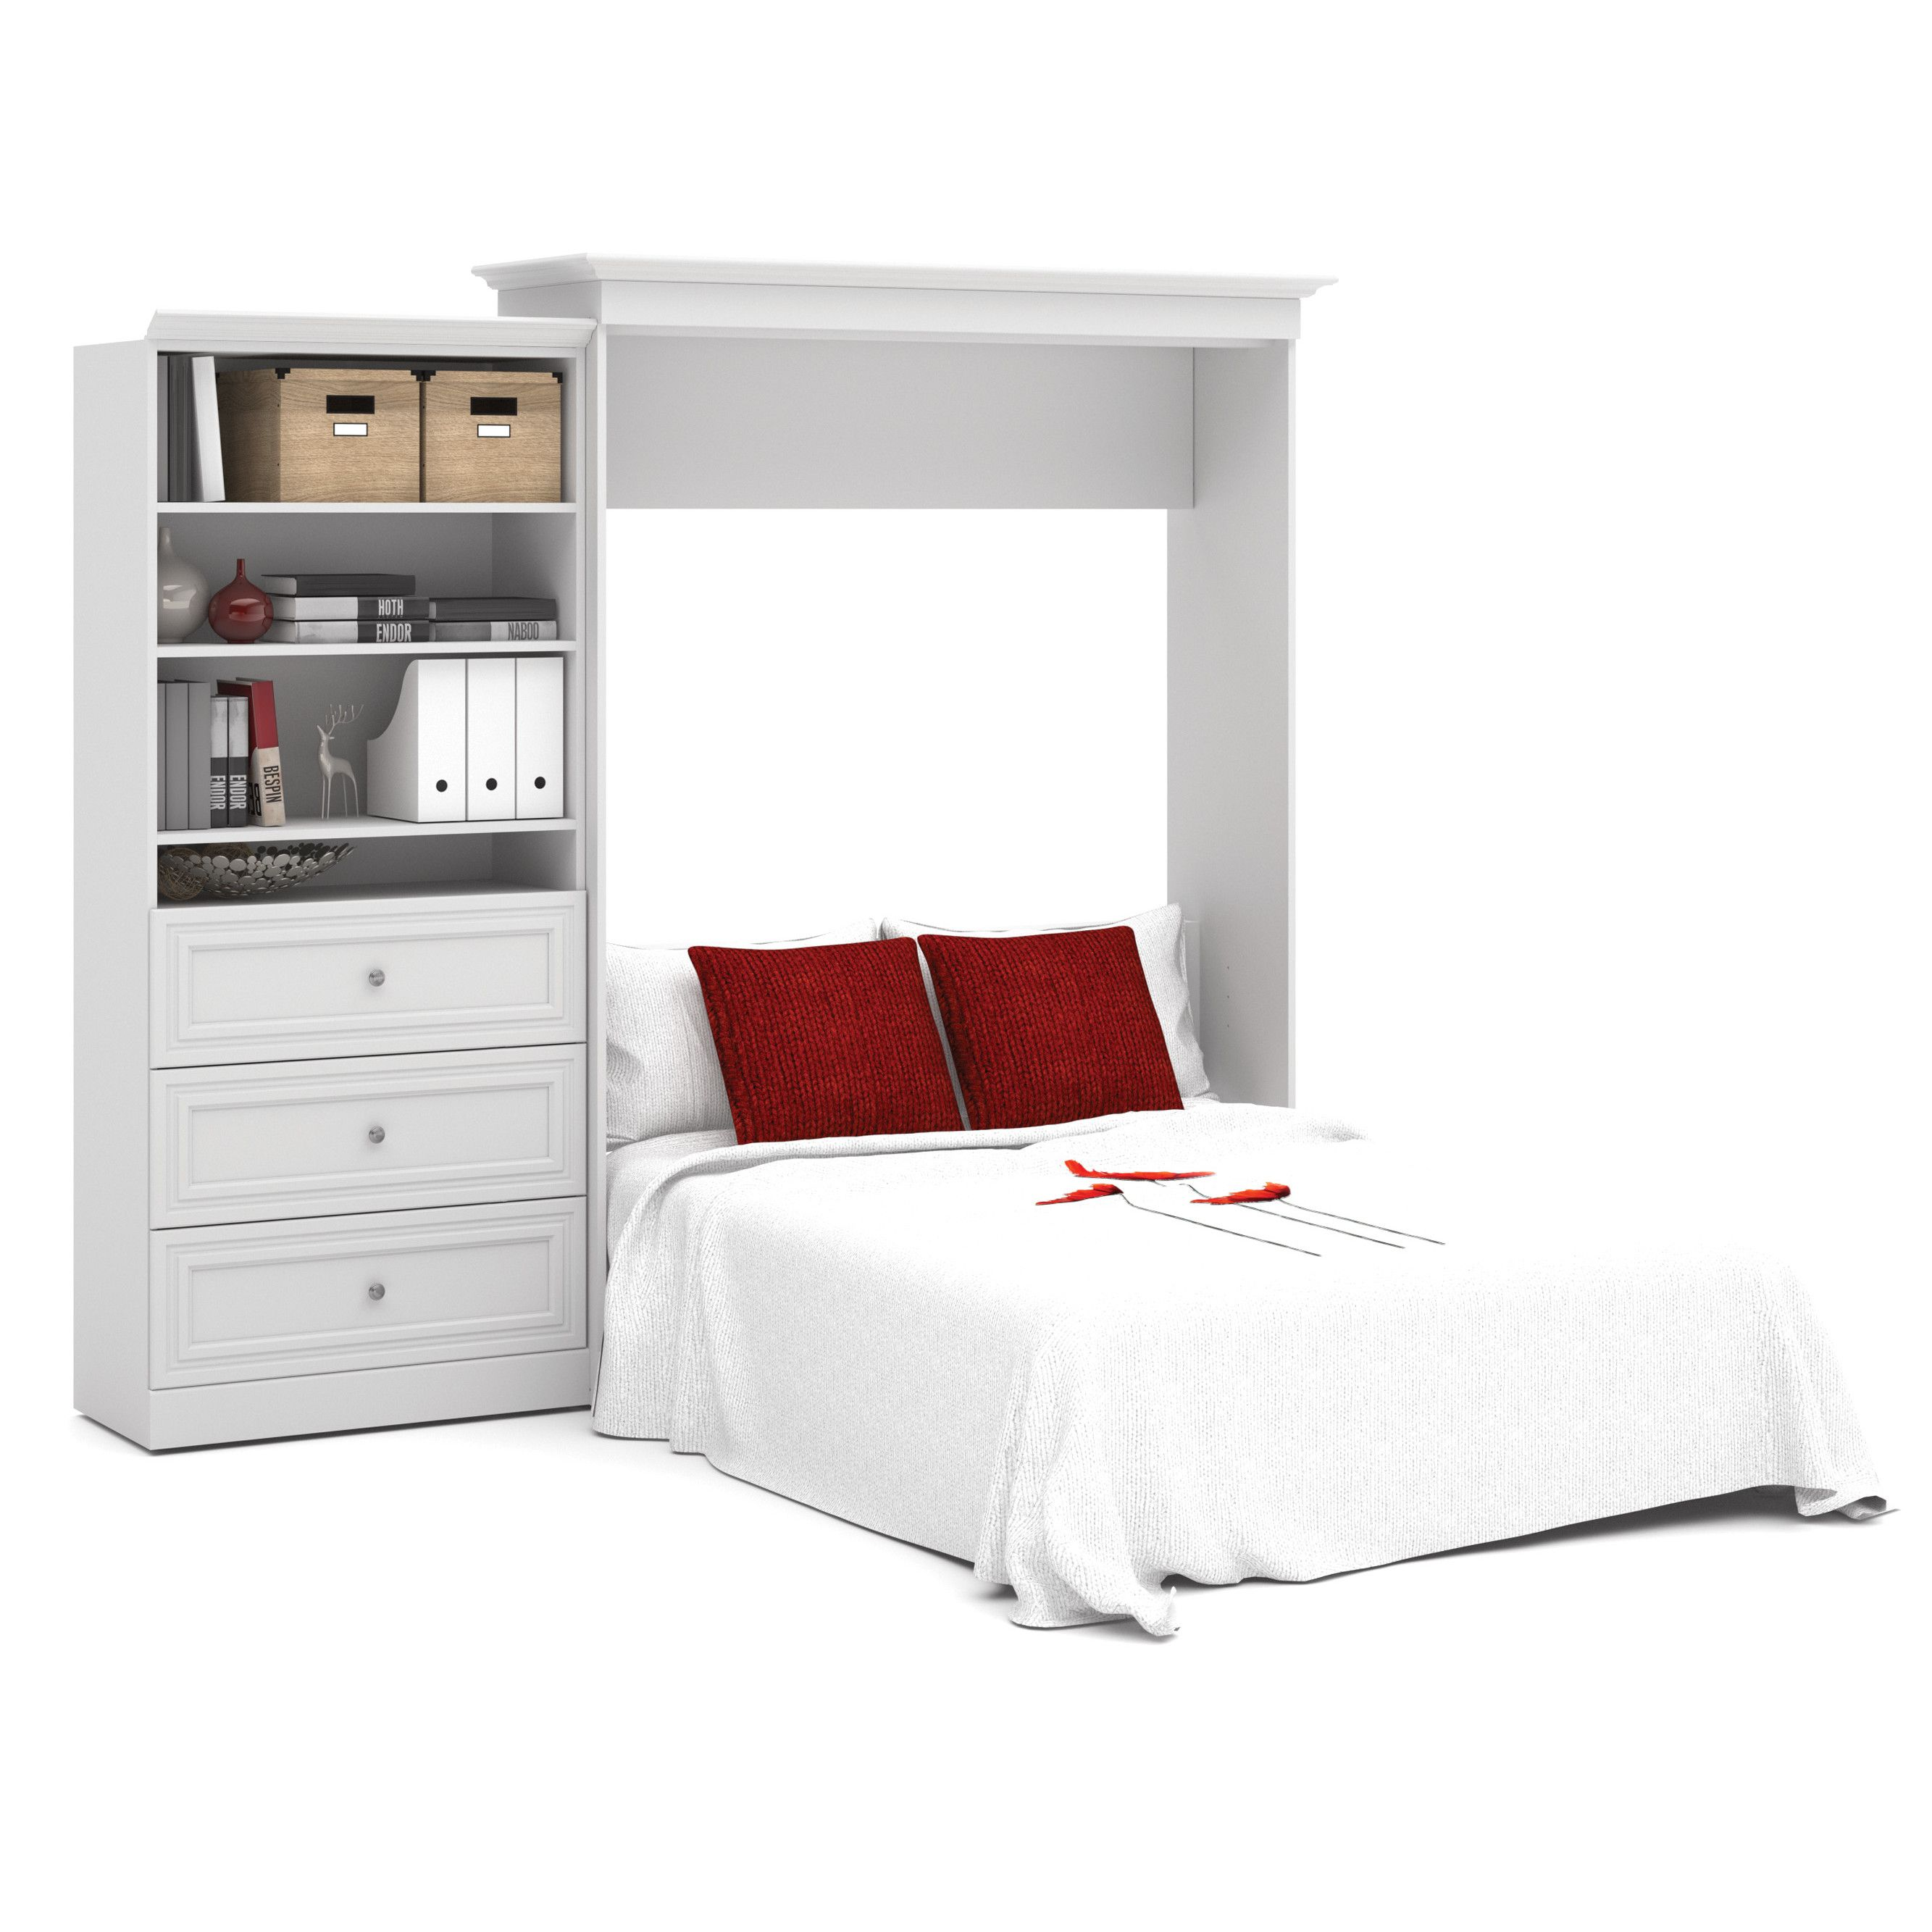 Customer Image Zoomed | Murphy Bed | Pinterest